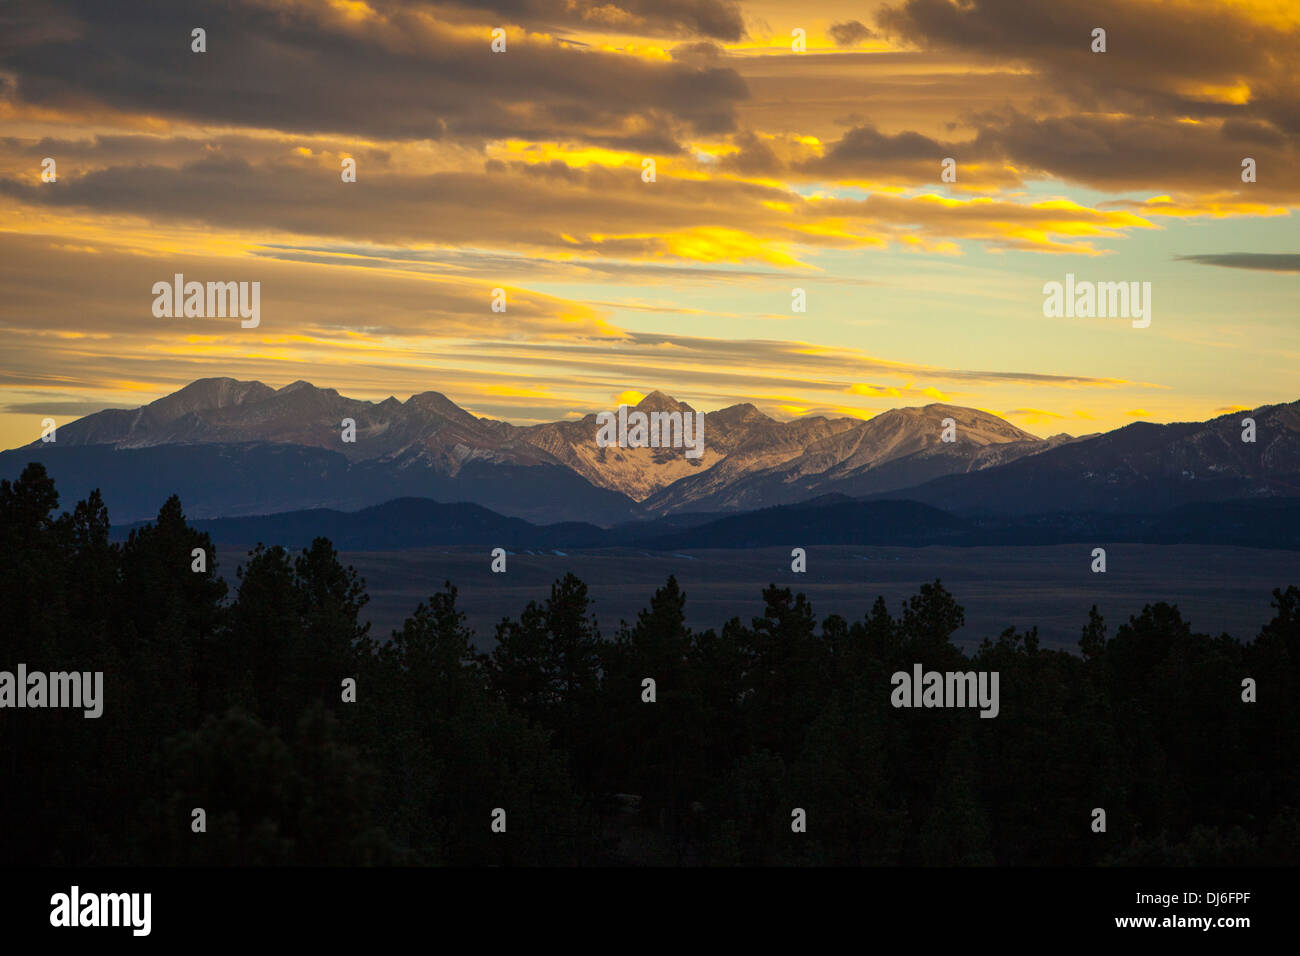 Mountain Sunset in Colorado - Stock Image